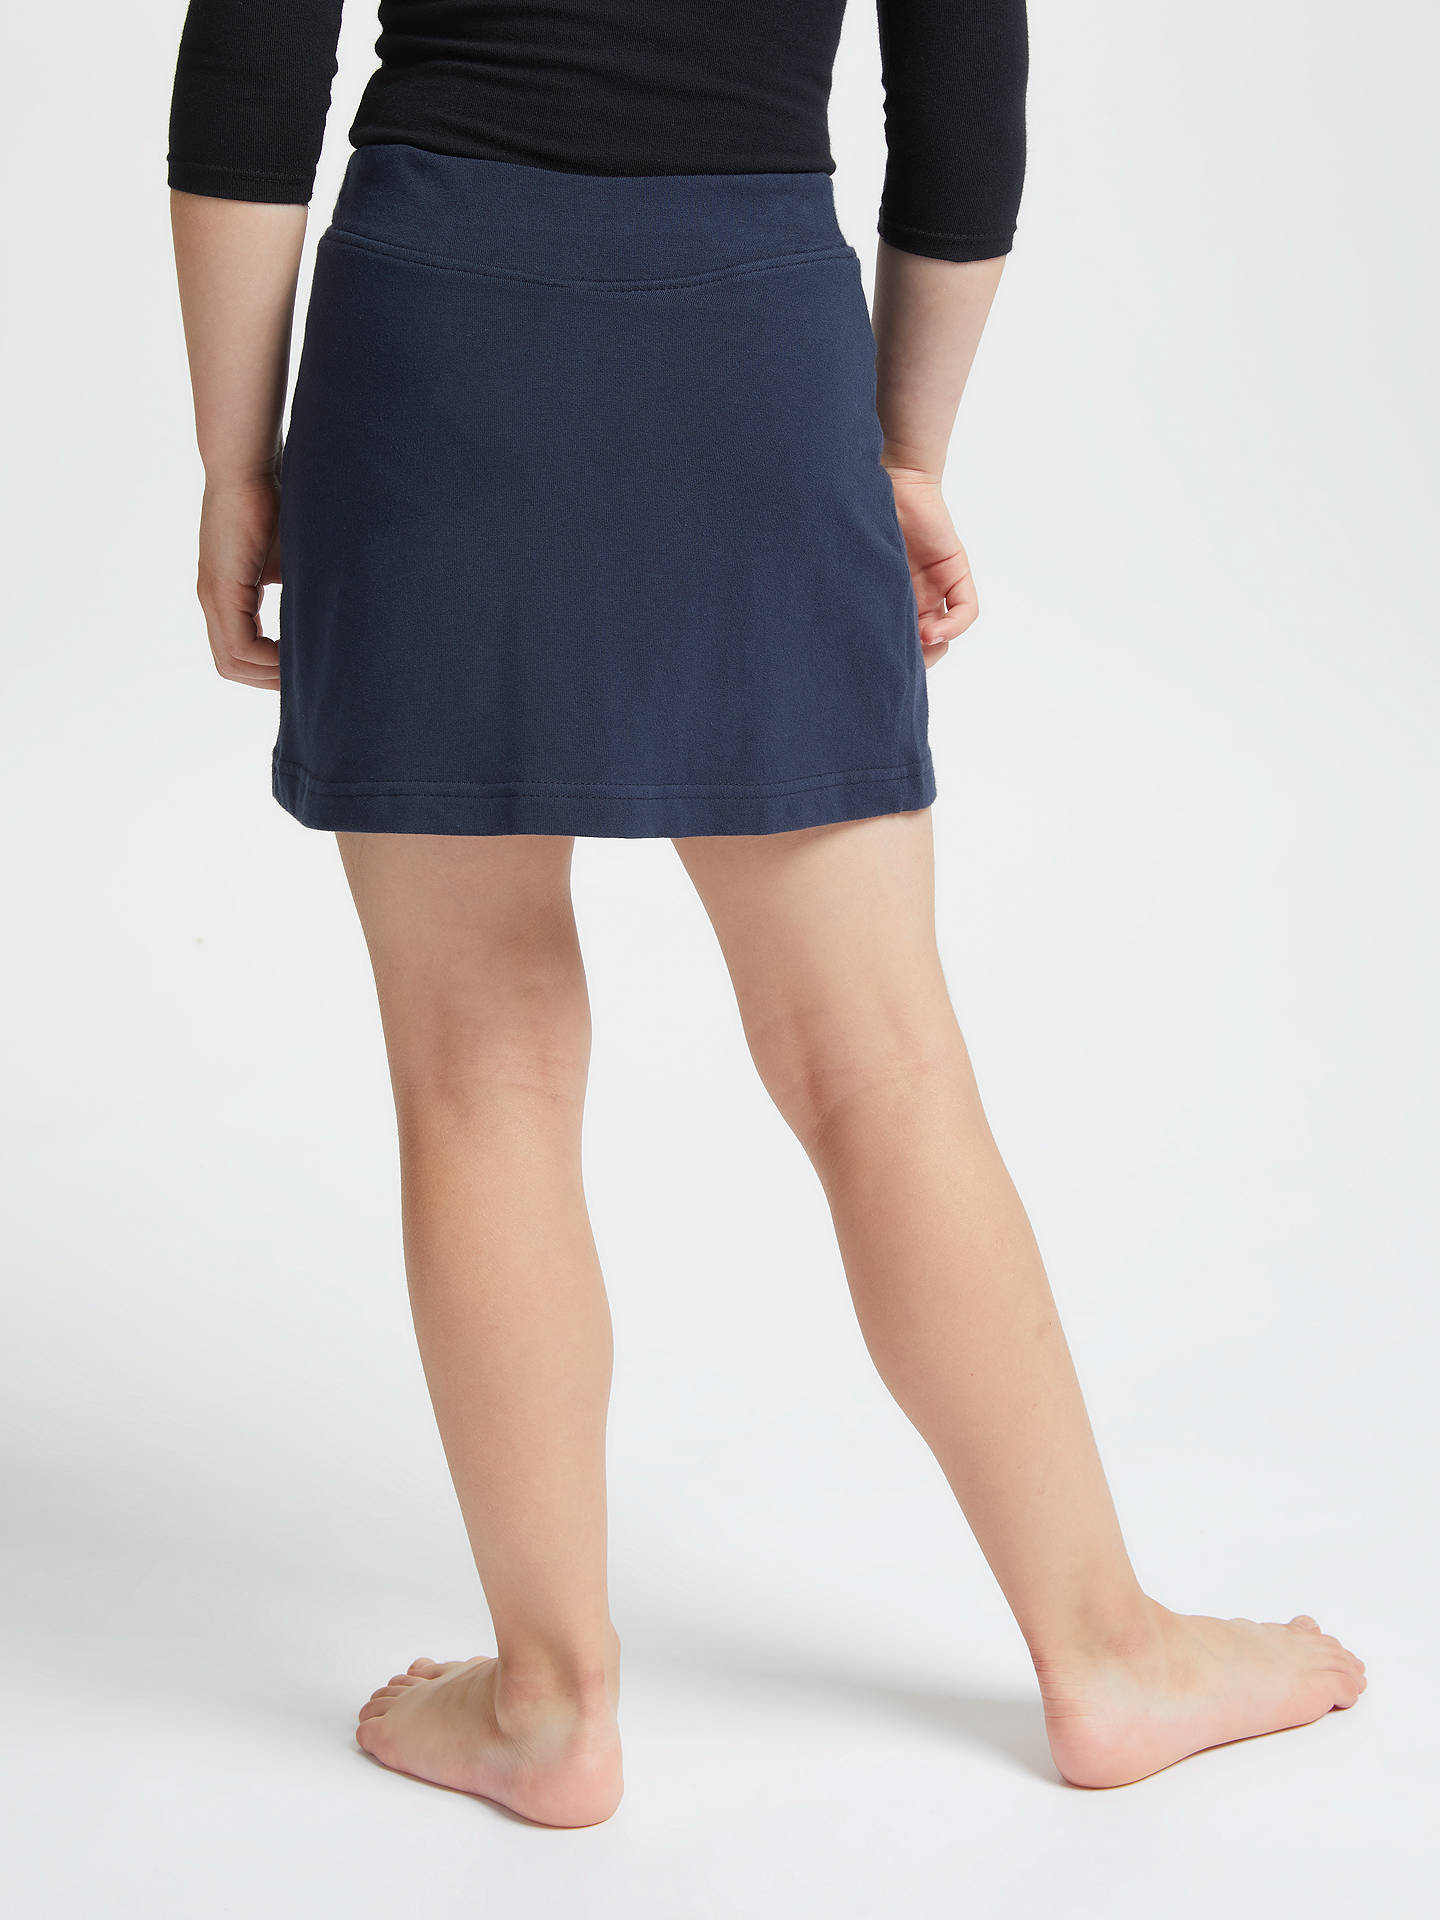 BuyJohn Lewis & Partners Girls' School PE Skorts, Navy, 5/6 years Online at johnlewis.com